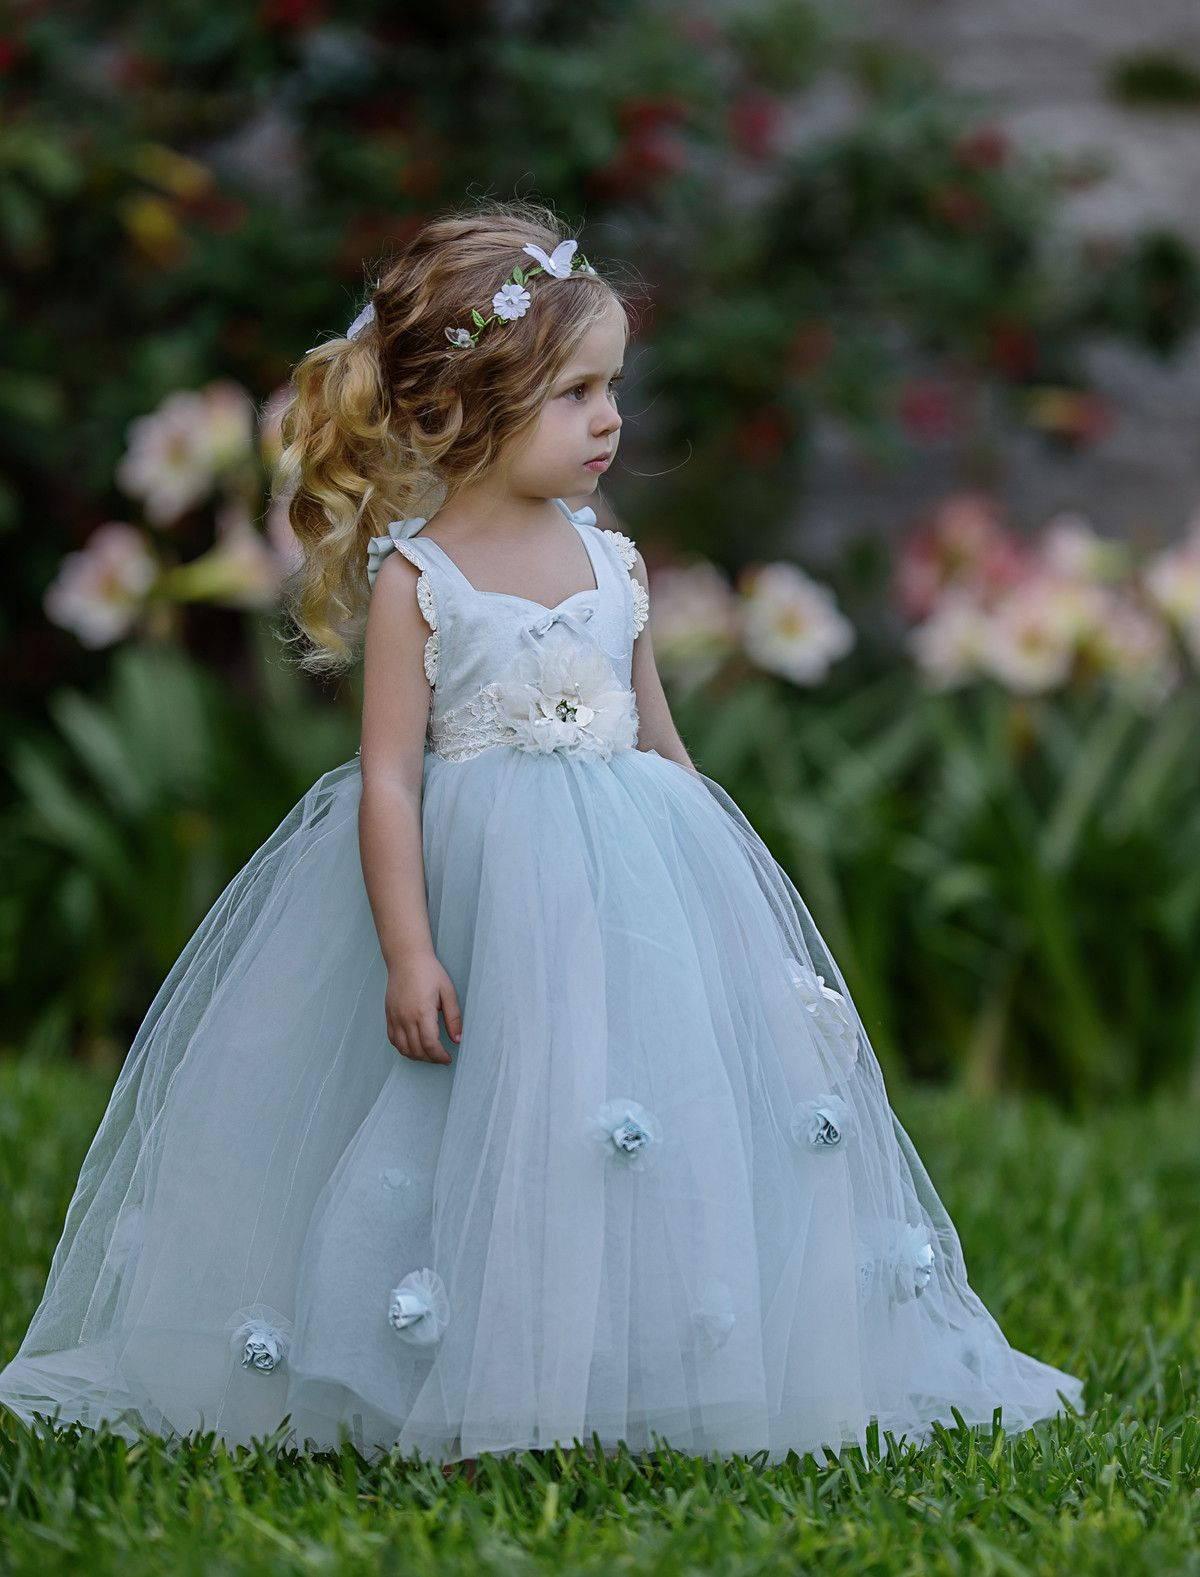 Need a flower girl dress for a wedding? Your little girl will look ...